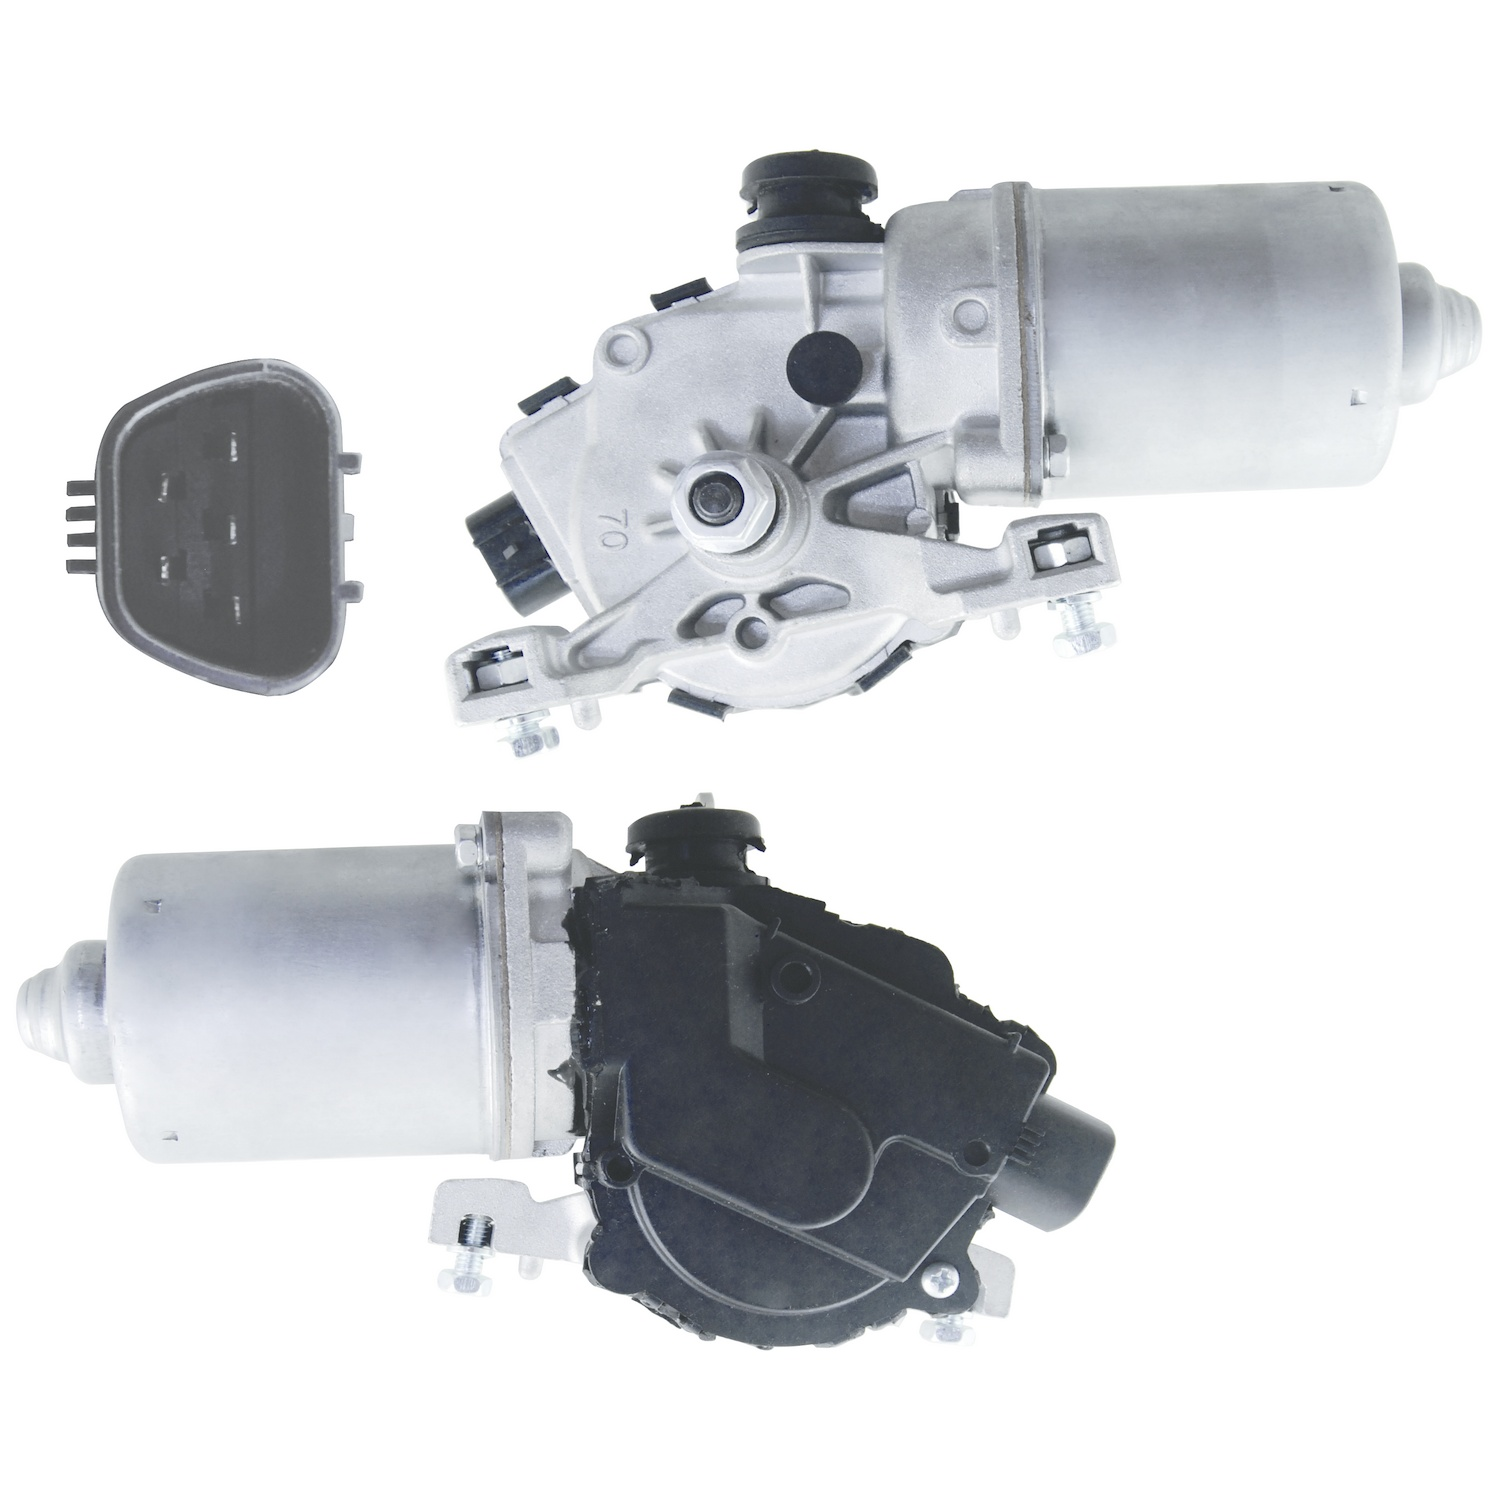 New front wiper motor fits hummer h3 sport utility 3 7l 5 for General motors parts online discount code